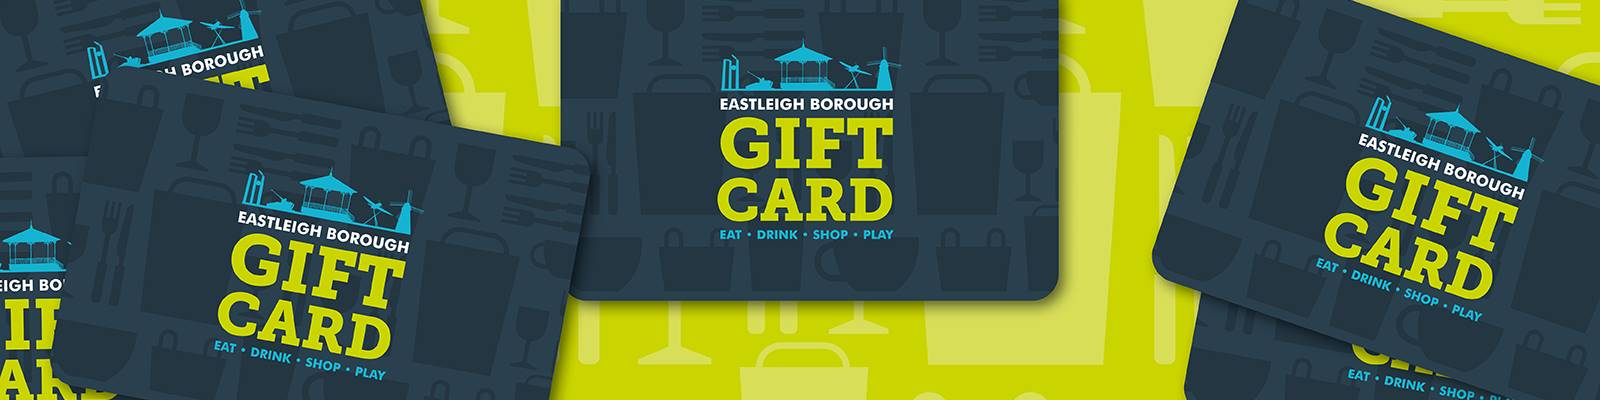 225460 Eastleigh Bororugh Gift Card Web Banner (1)